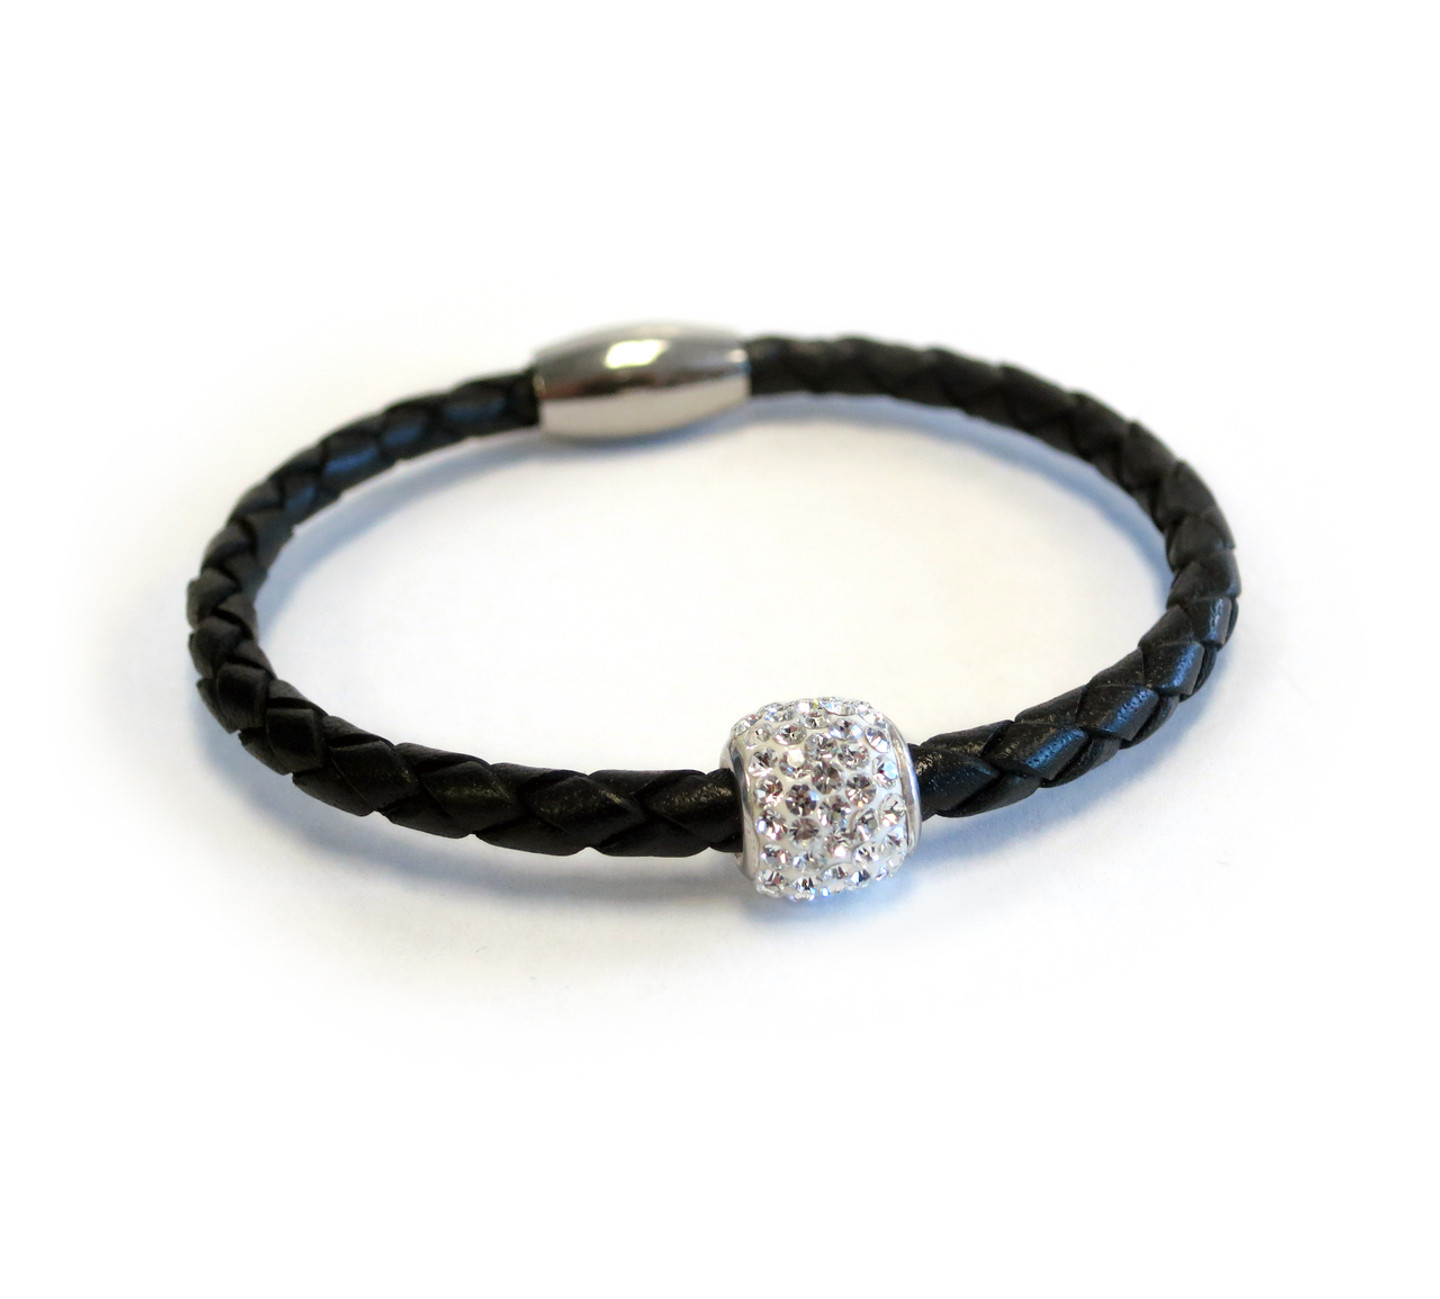 Single Bedazzle Leather Bracelet